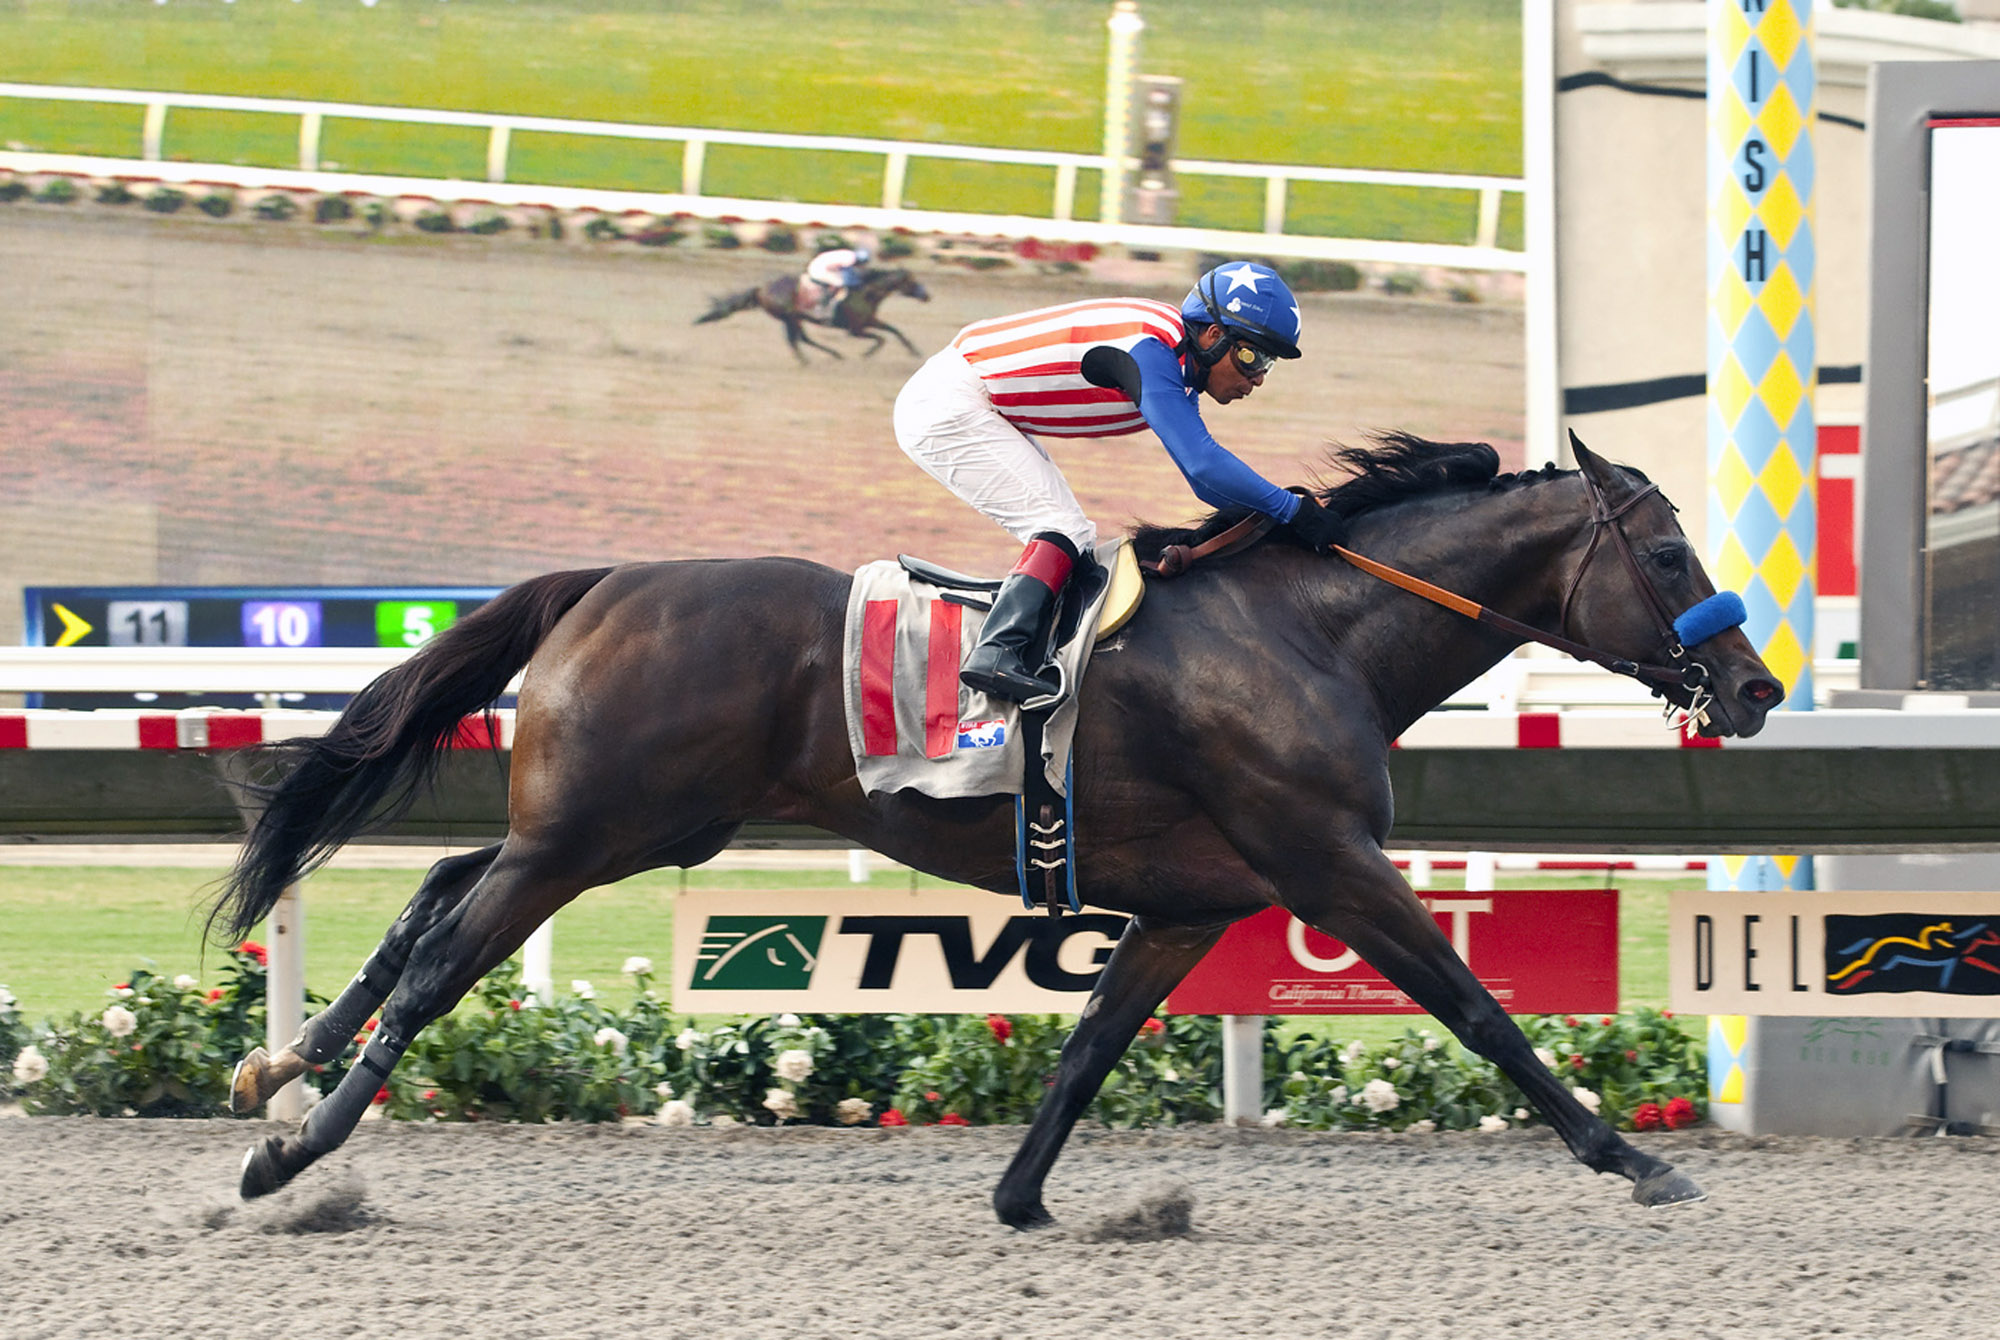 In this image provided by Benoit Photo, Fed Biz, with Martin Garcia aboard, wins the Grade II, $200,000 San Diego Handicap horse race on Saturday, July 26, 2014, at Del Mar Thoroughbred Club in Del Mar, Calif